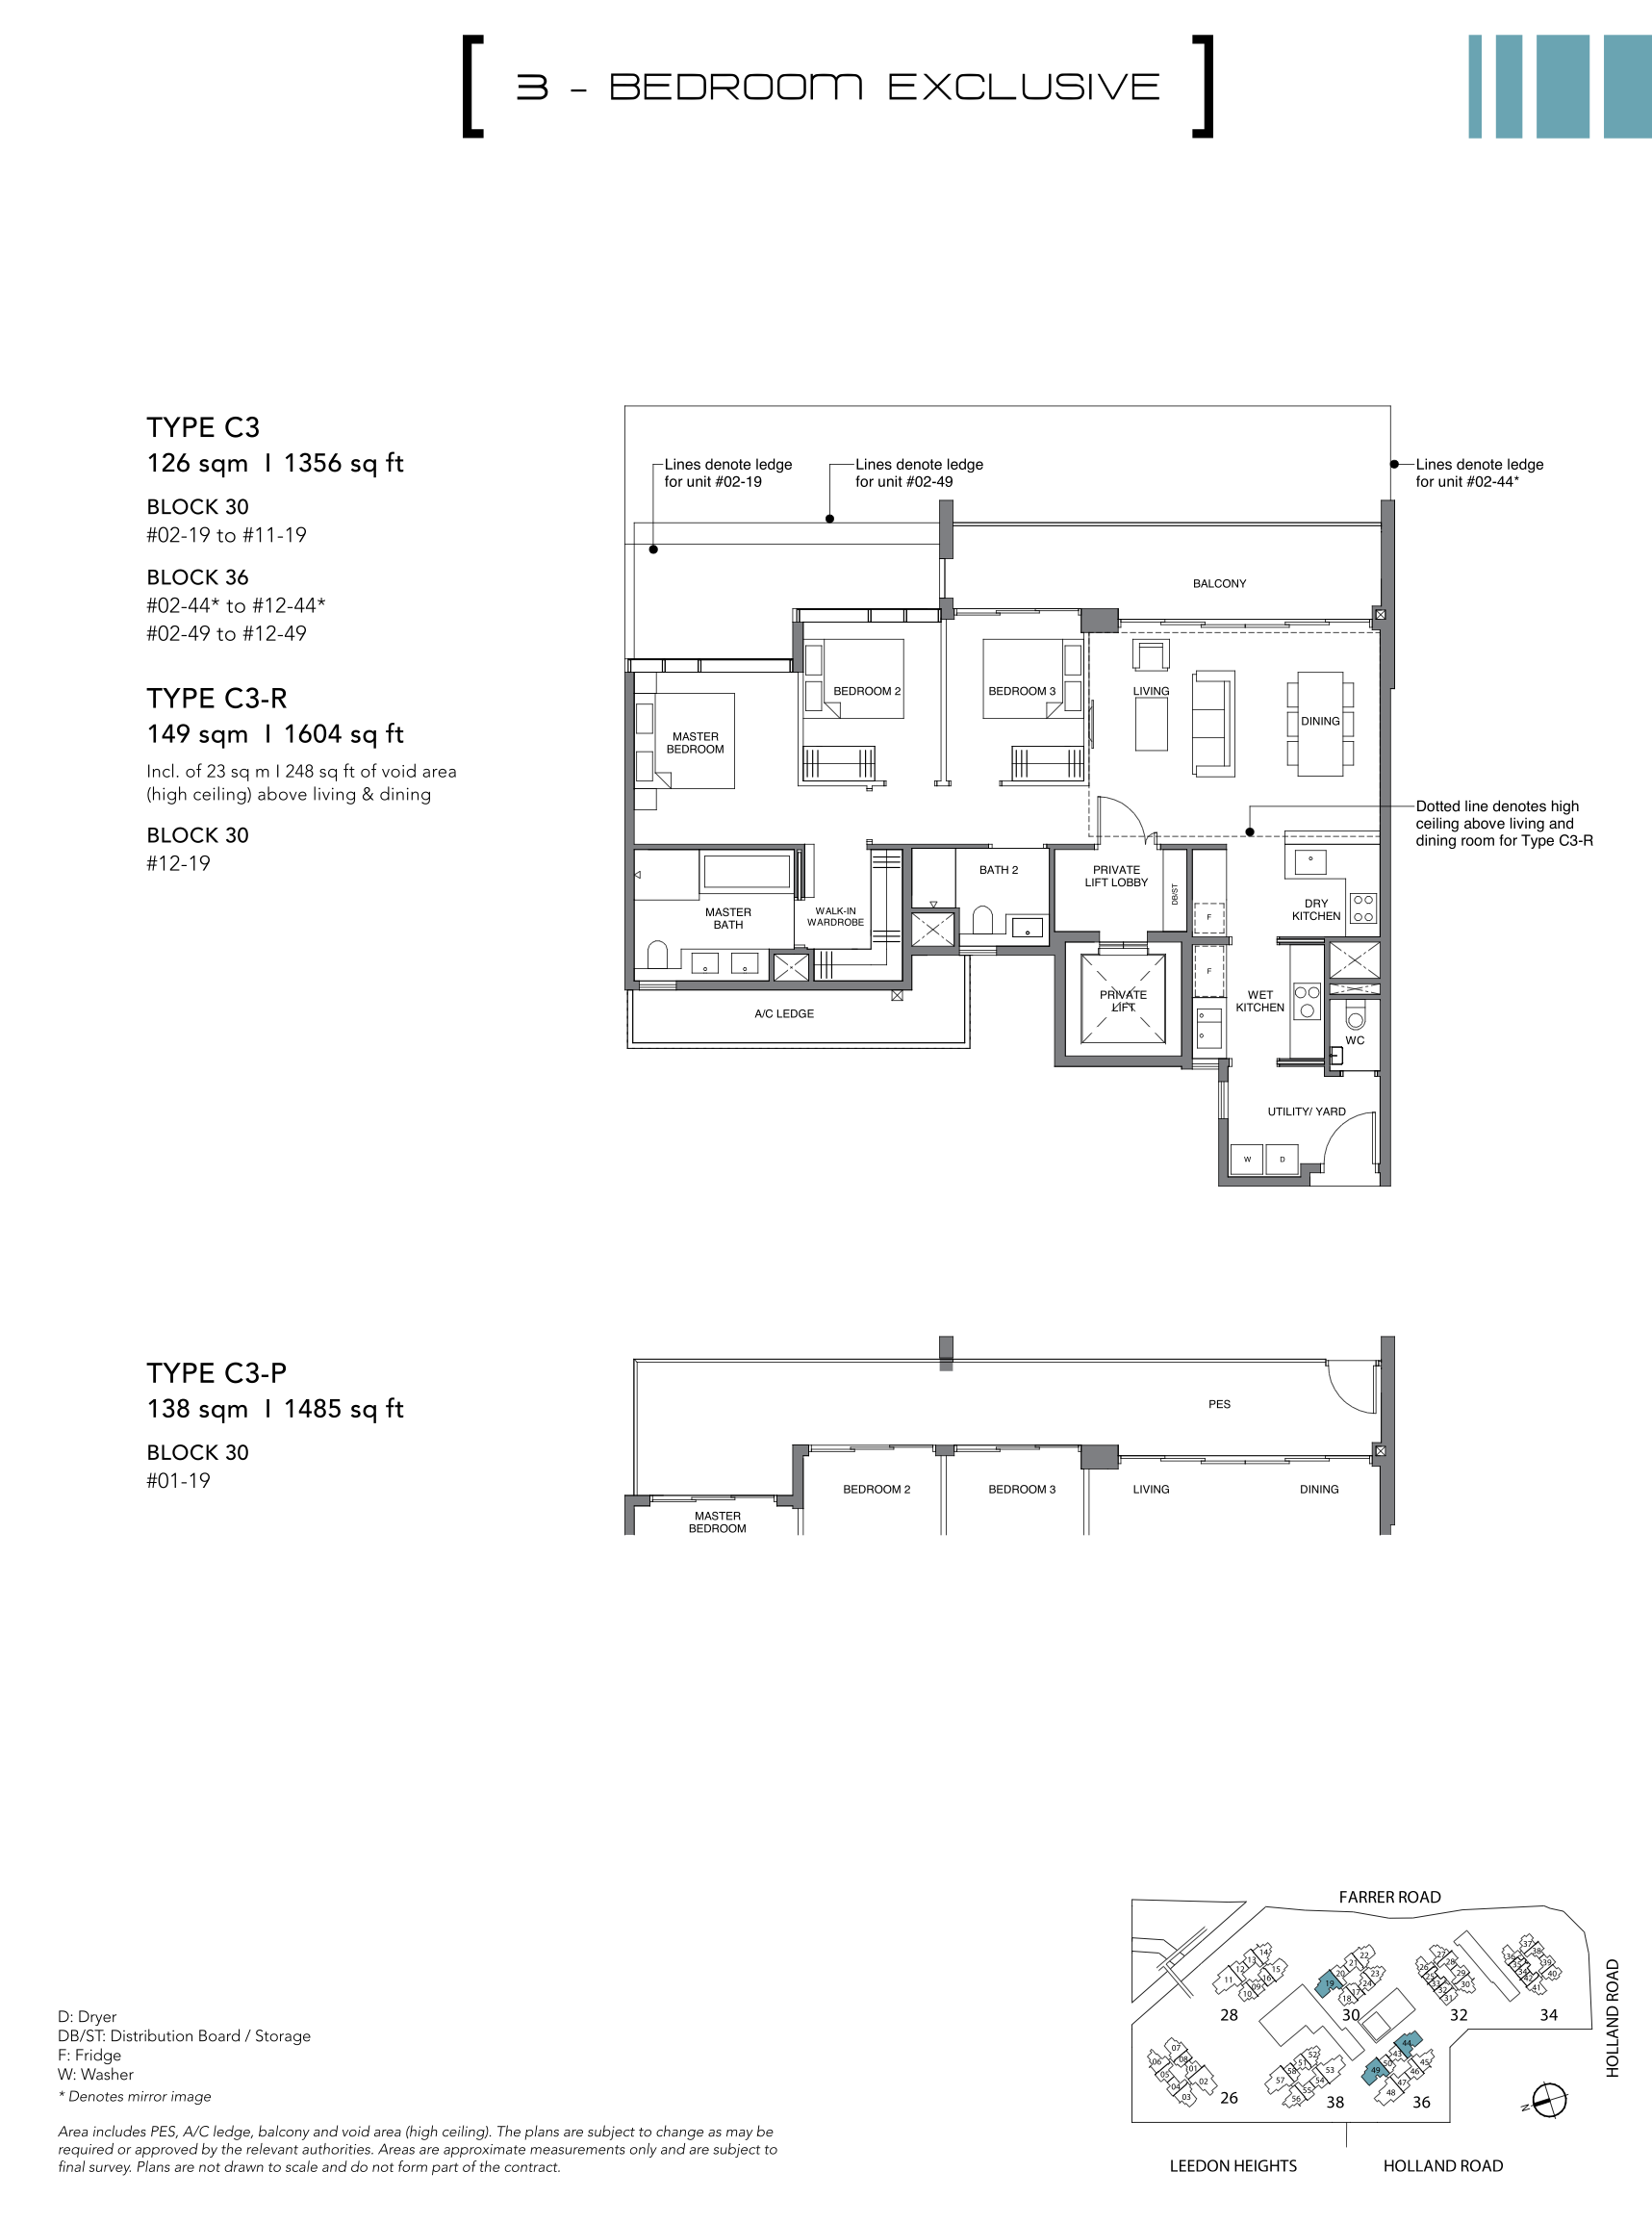 绿墩雅苑公寓户型图 Leedon Green floor plan 3 bedroom exclusive c3